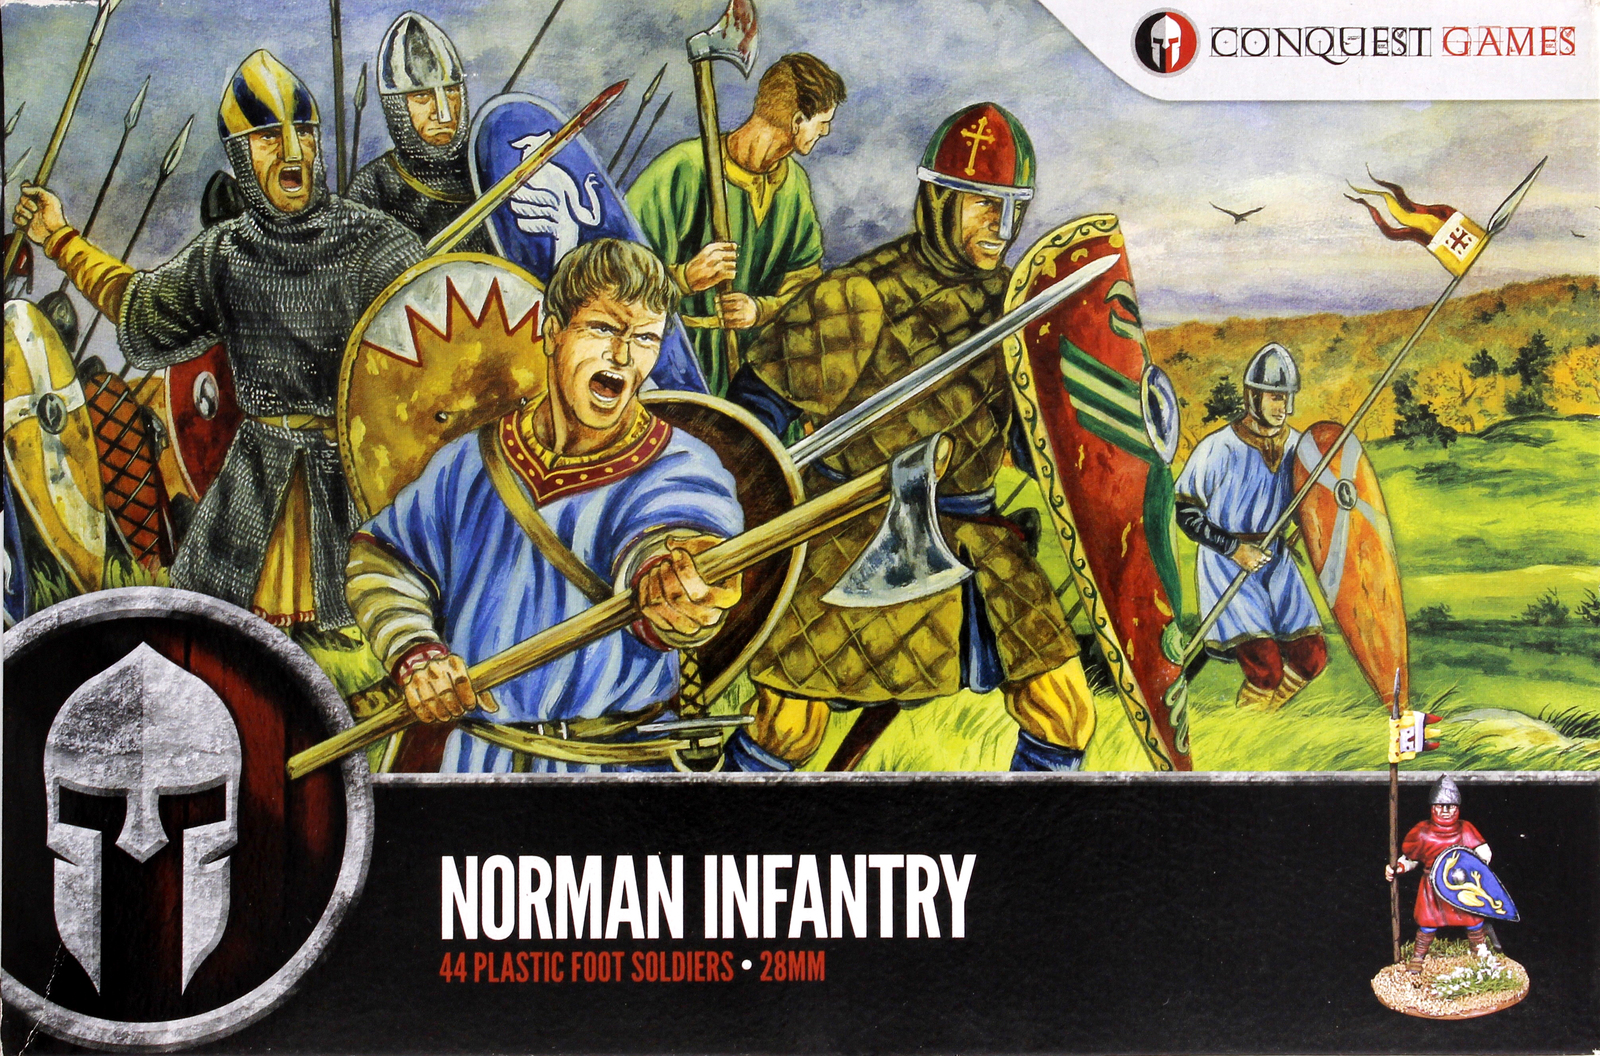 Conquest Games: Norman Infantry image